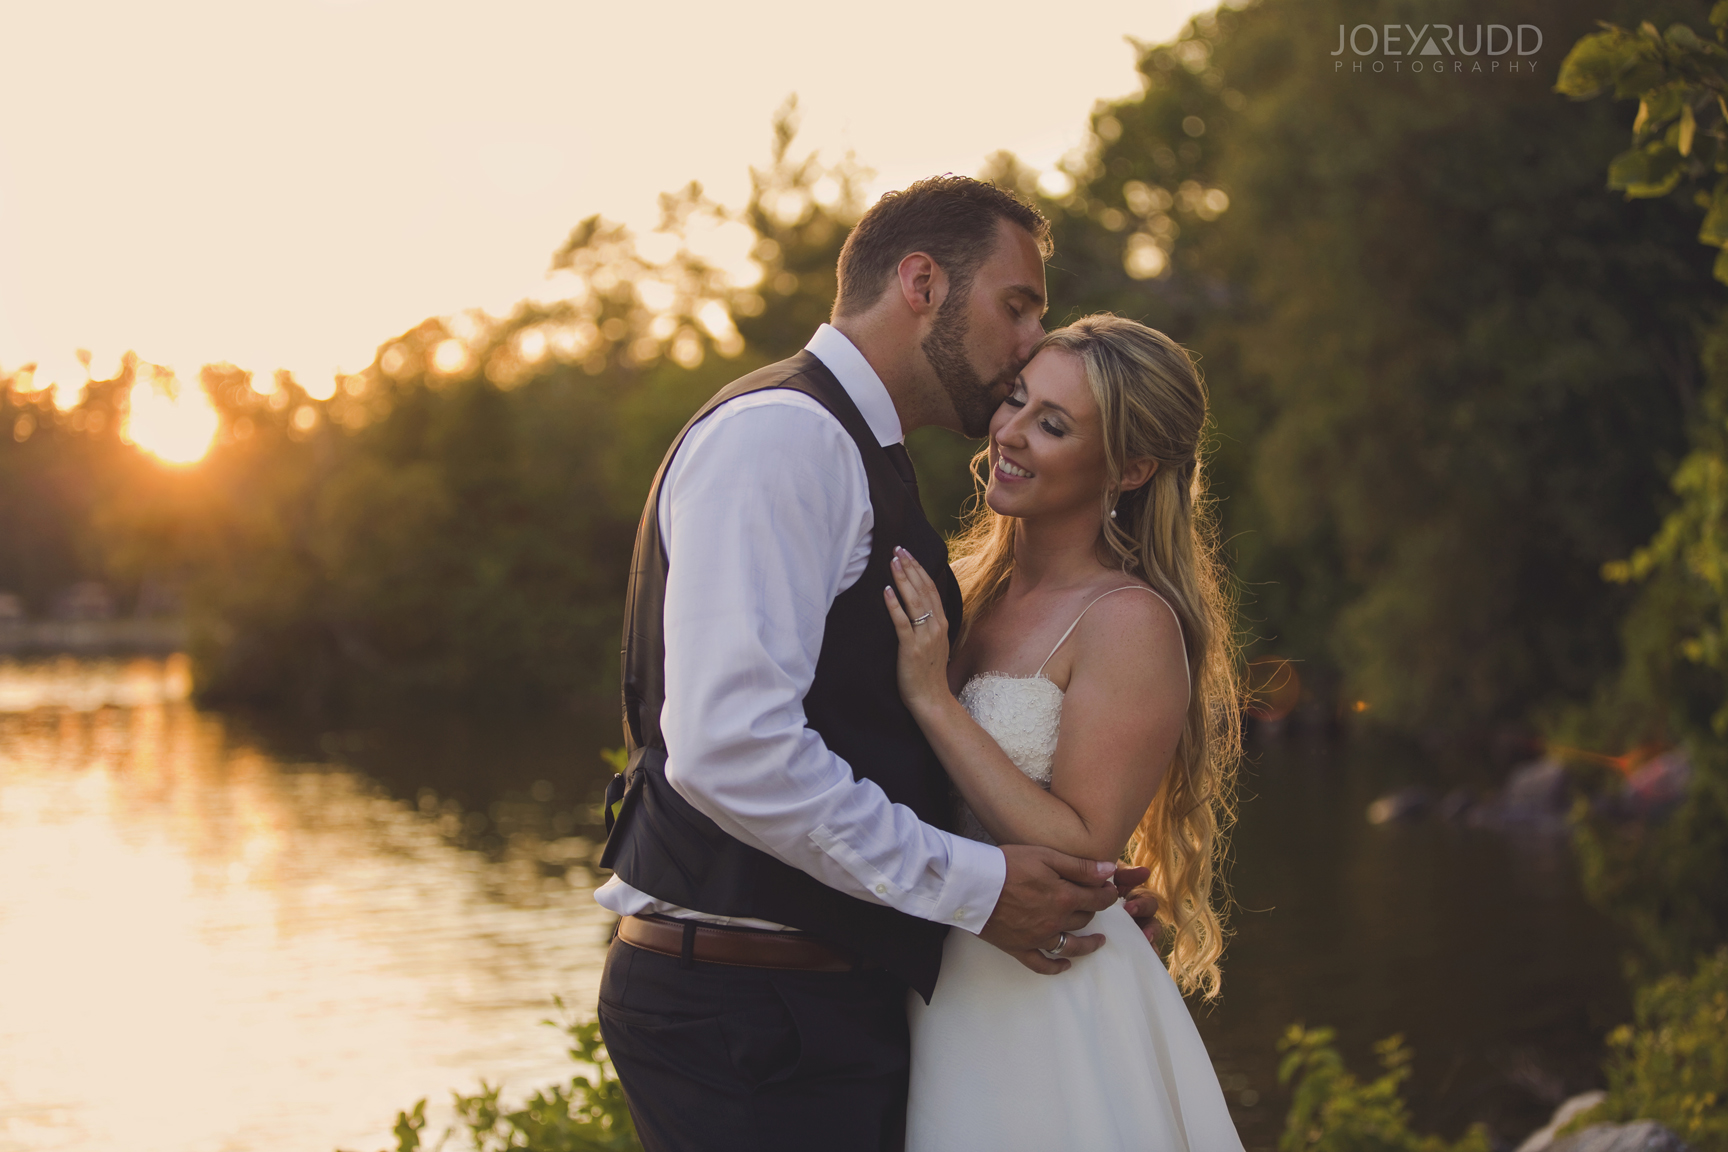 Calabogie Wedding at Barnet Park by Ottawa Wedding Photographer Joey Rudd Photography Sunset Portrait Bride and Groom